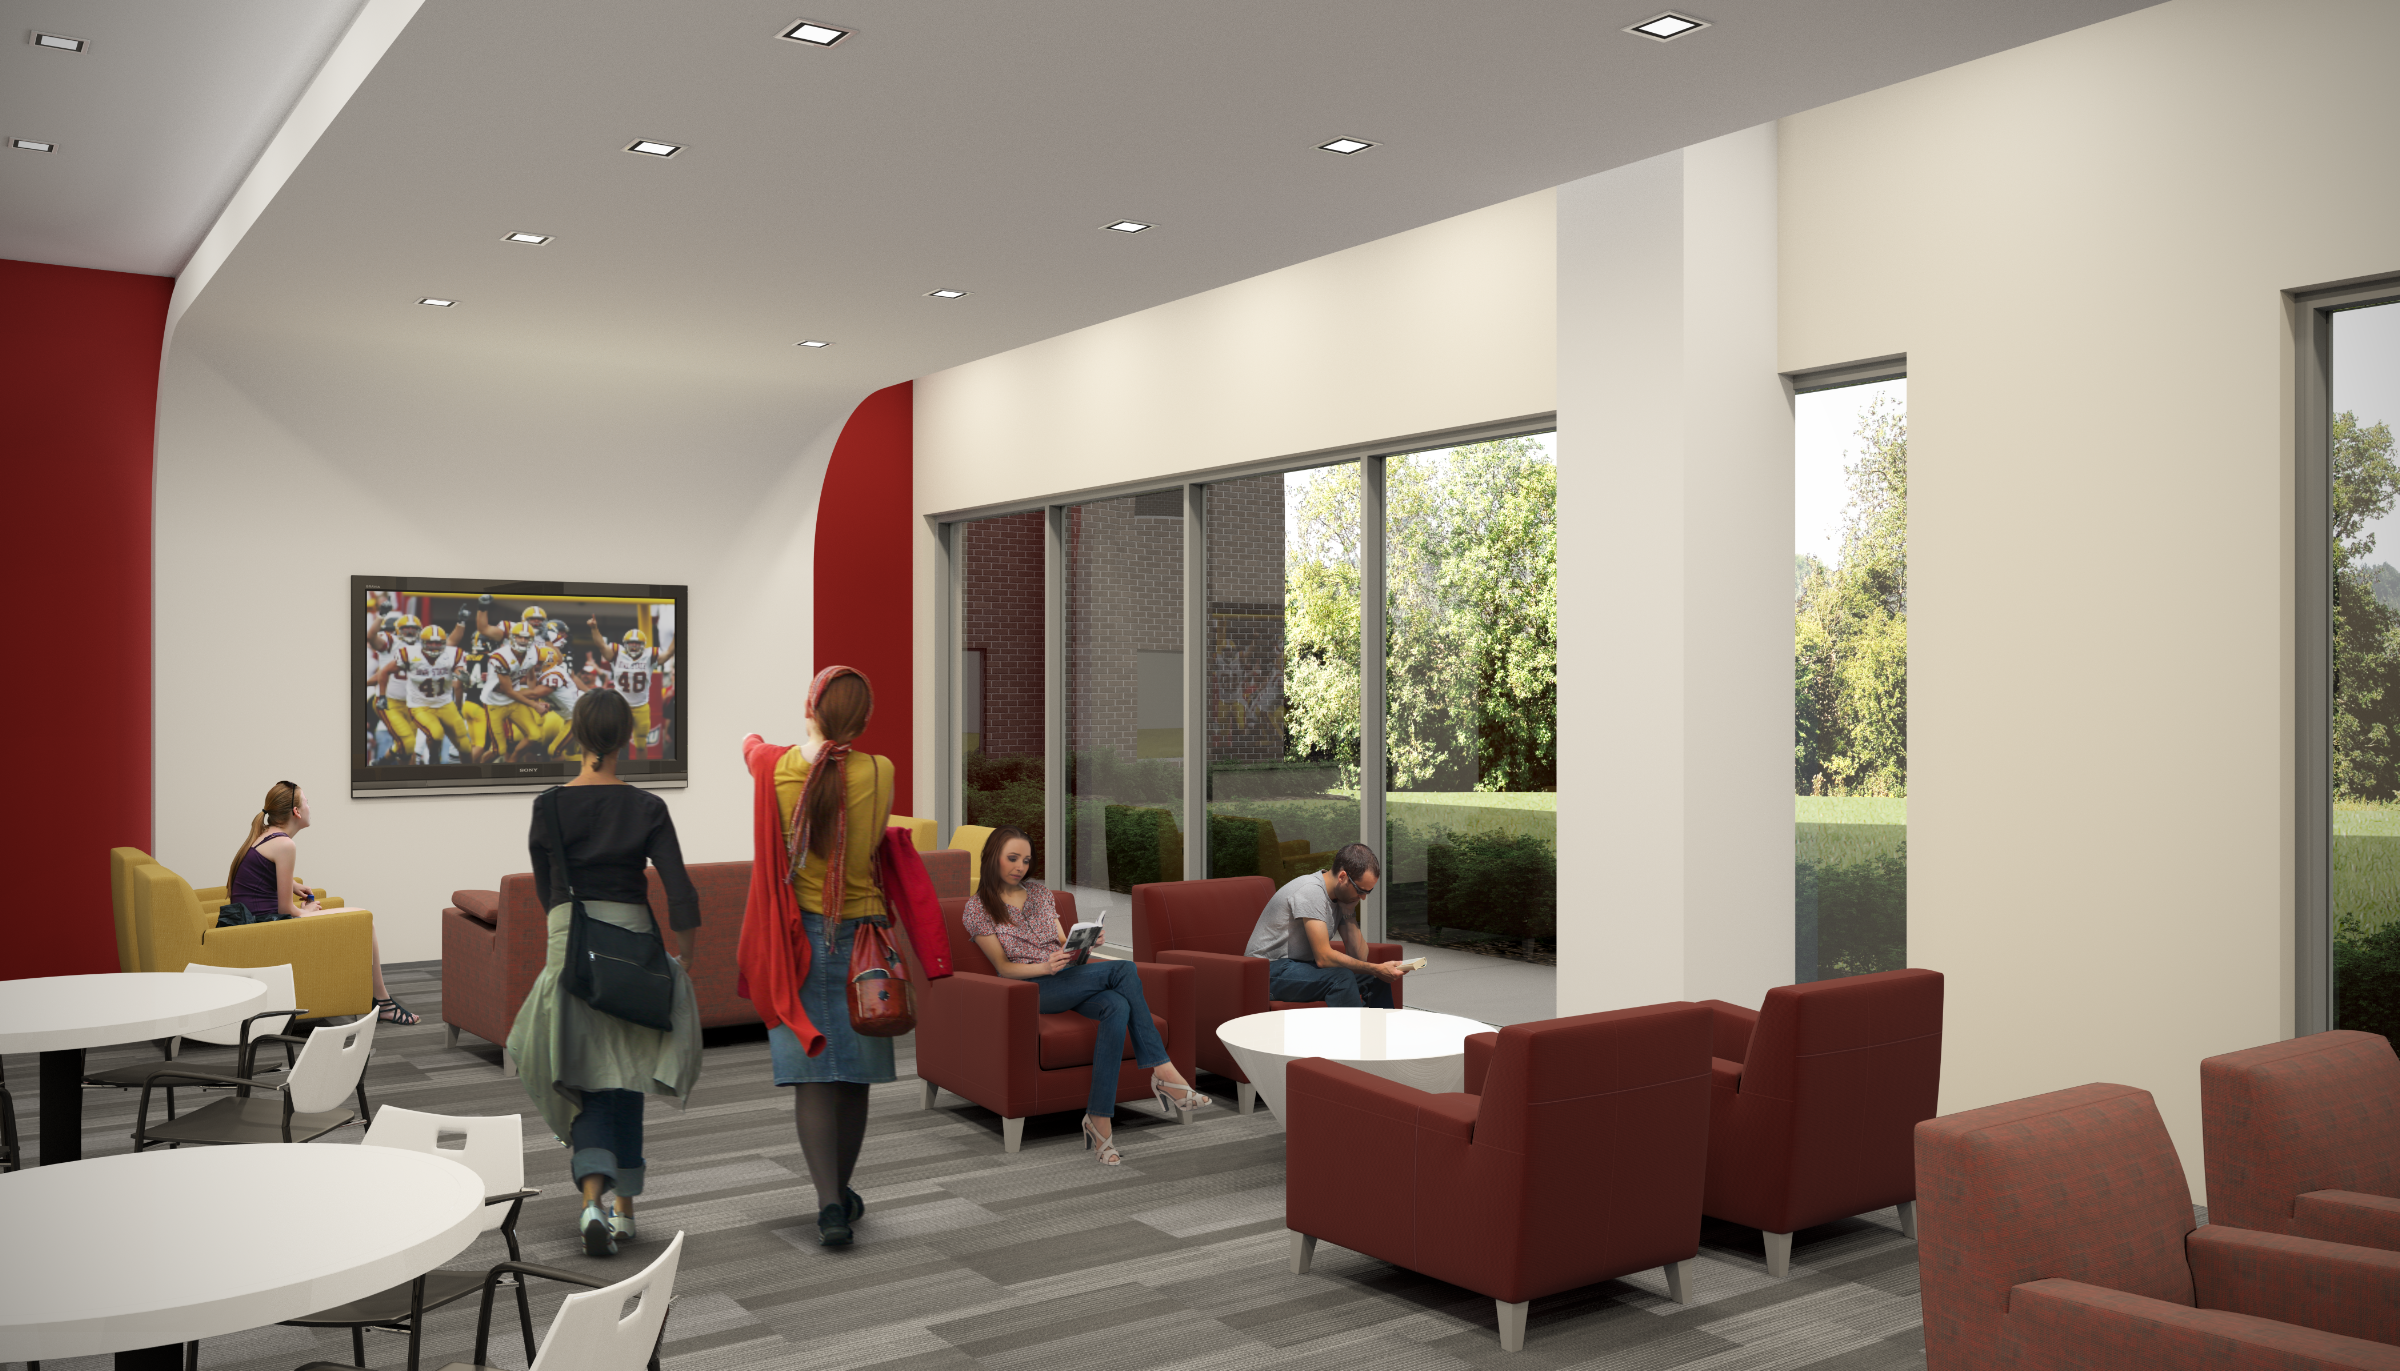 30806_ISU_INTERIORS_10_0002_ReTouched-01_2400px.png